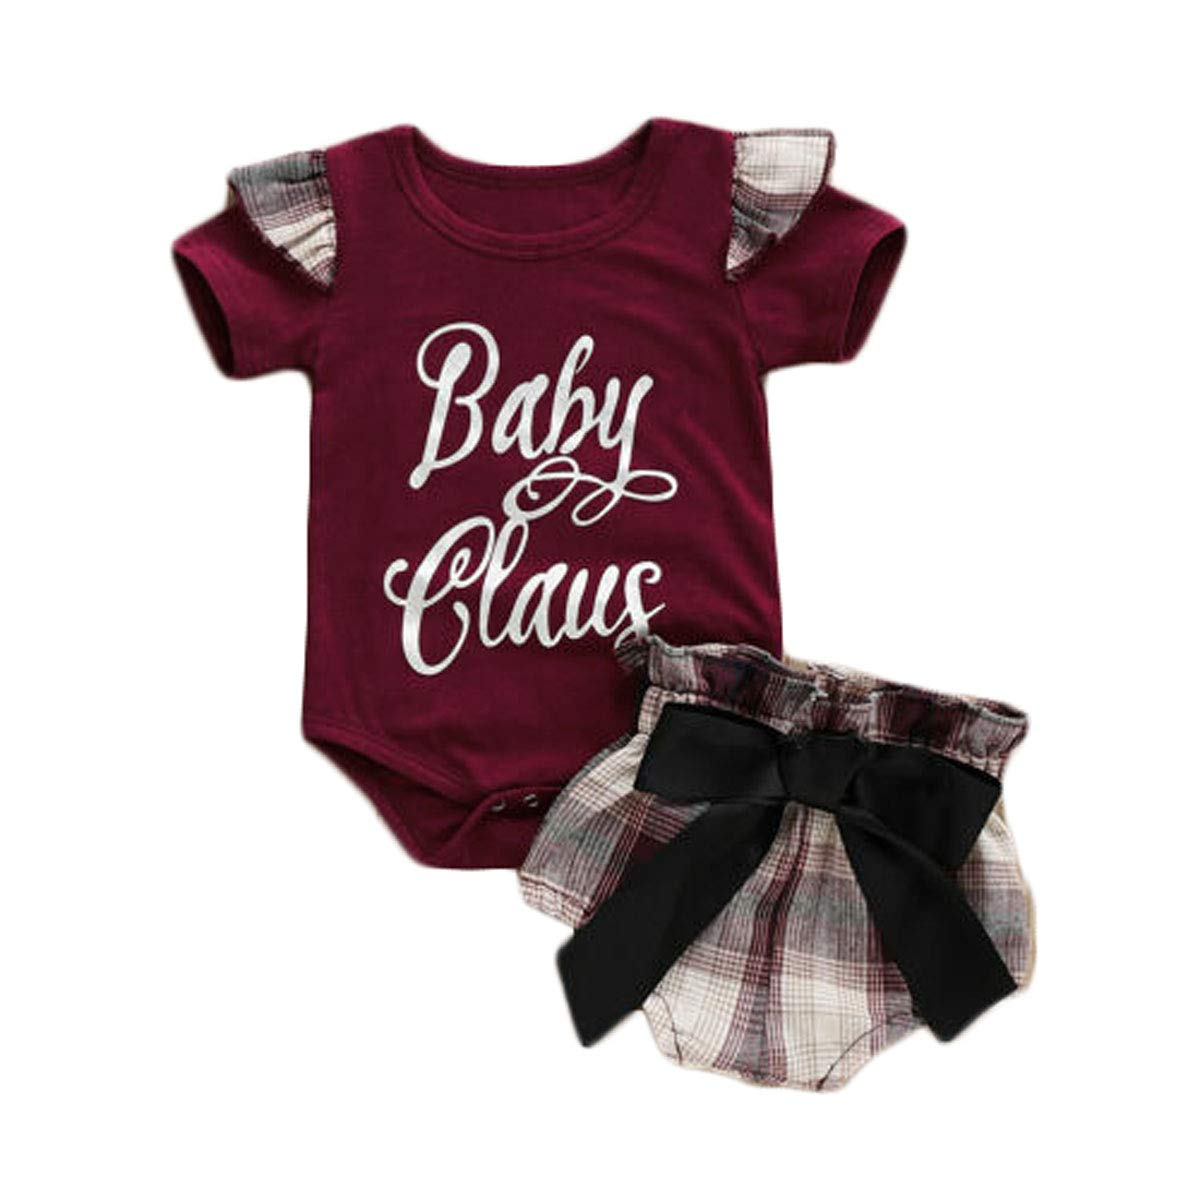 742ca460a95 Amazon.com  Toddler Baby Girl Bodysuit Flutter Sleeve Romper Tops Plaid  Bow-Knot Shorts Outfit Set Summer Clothes  Clothing